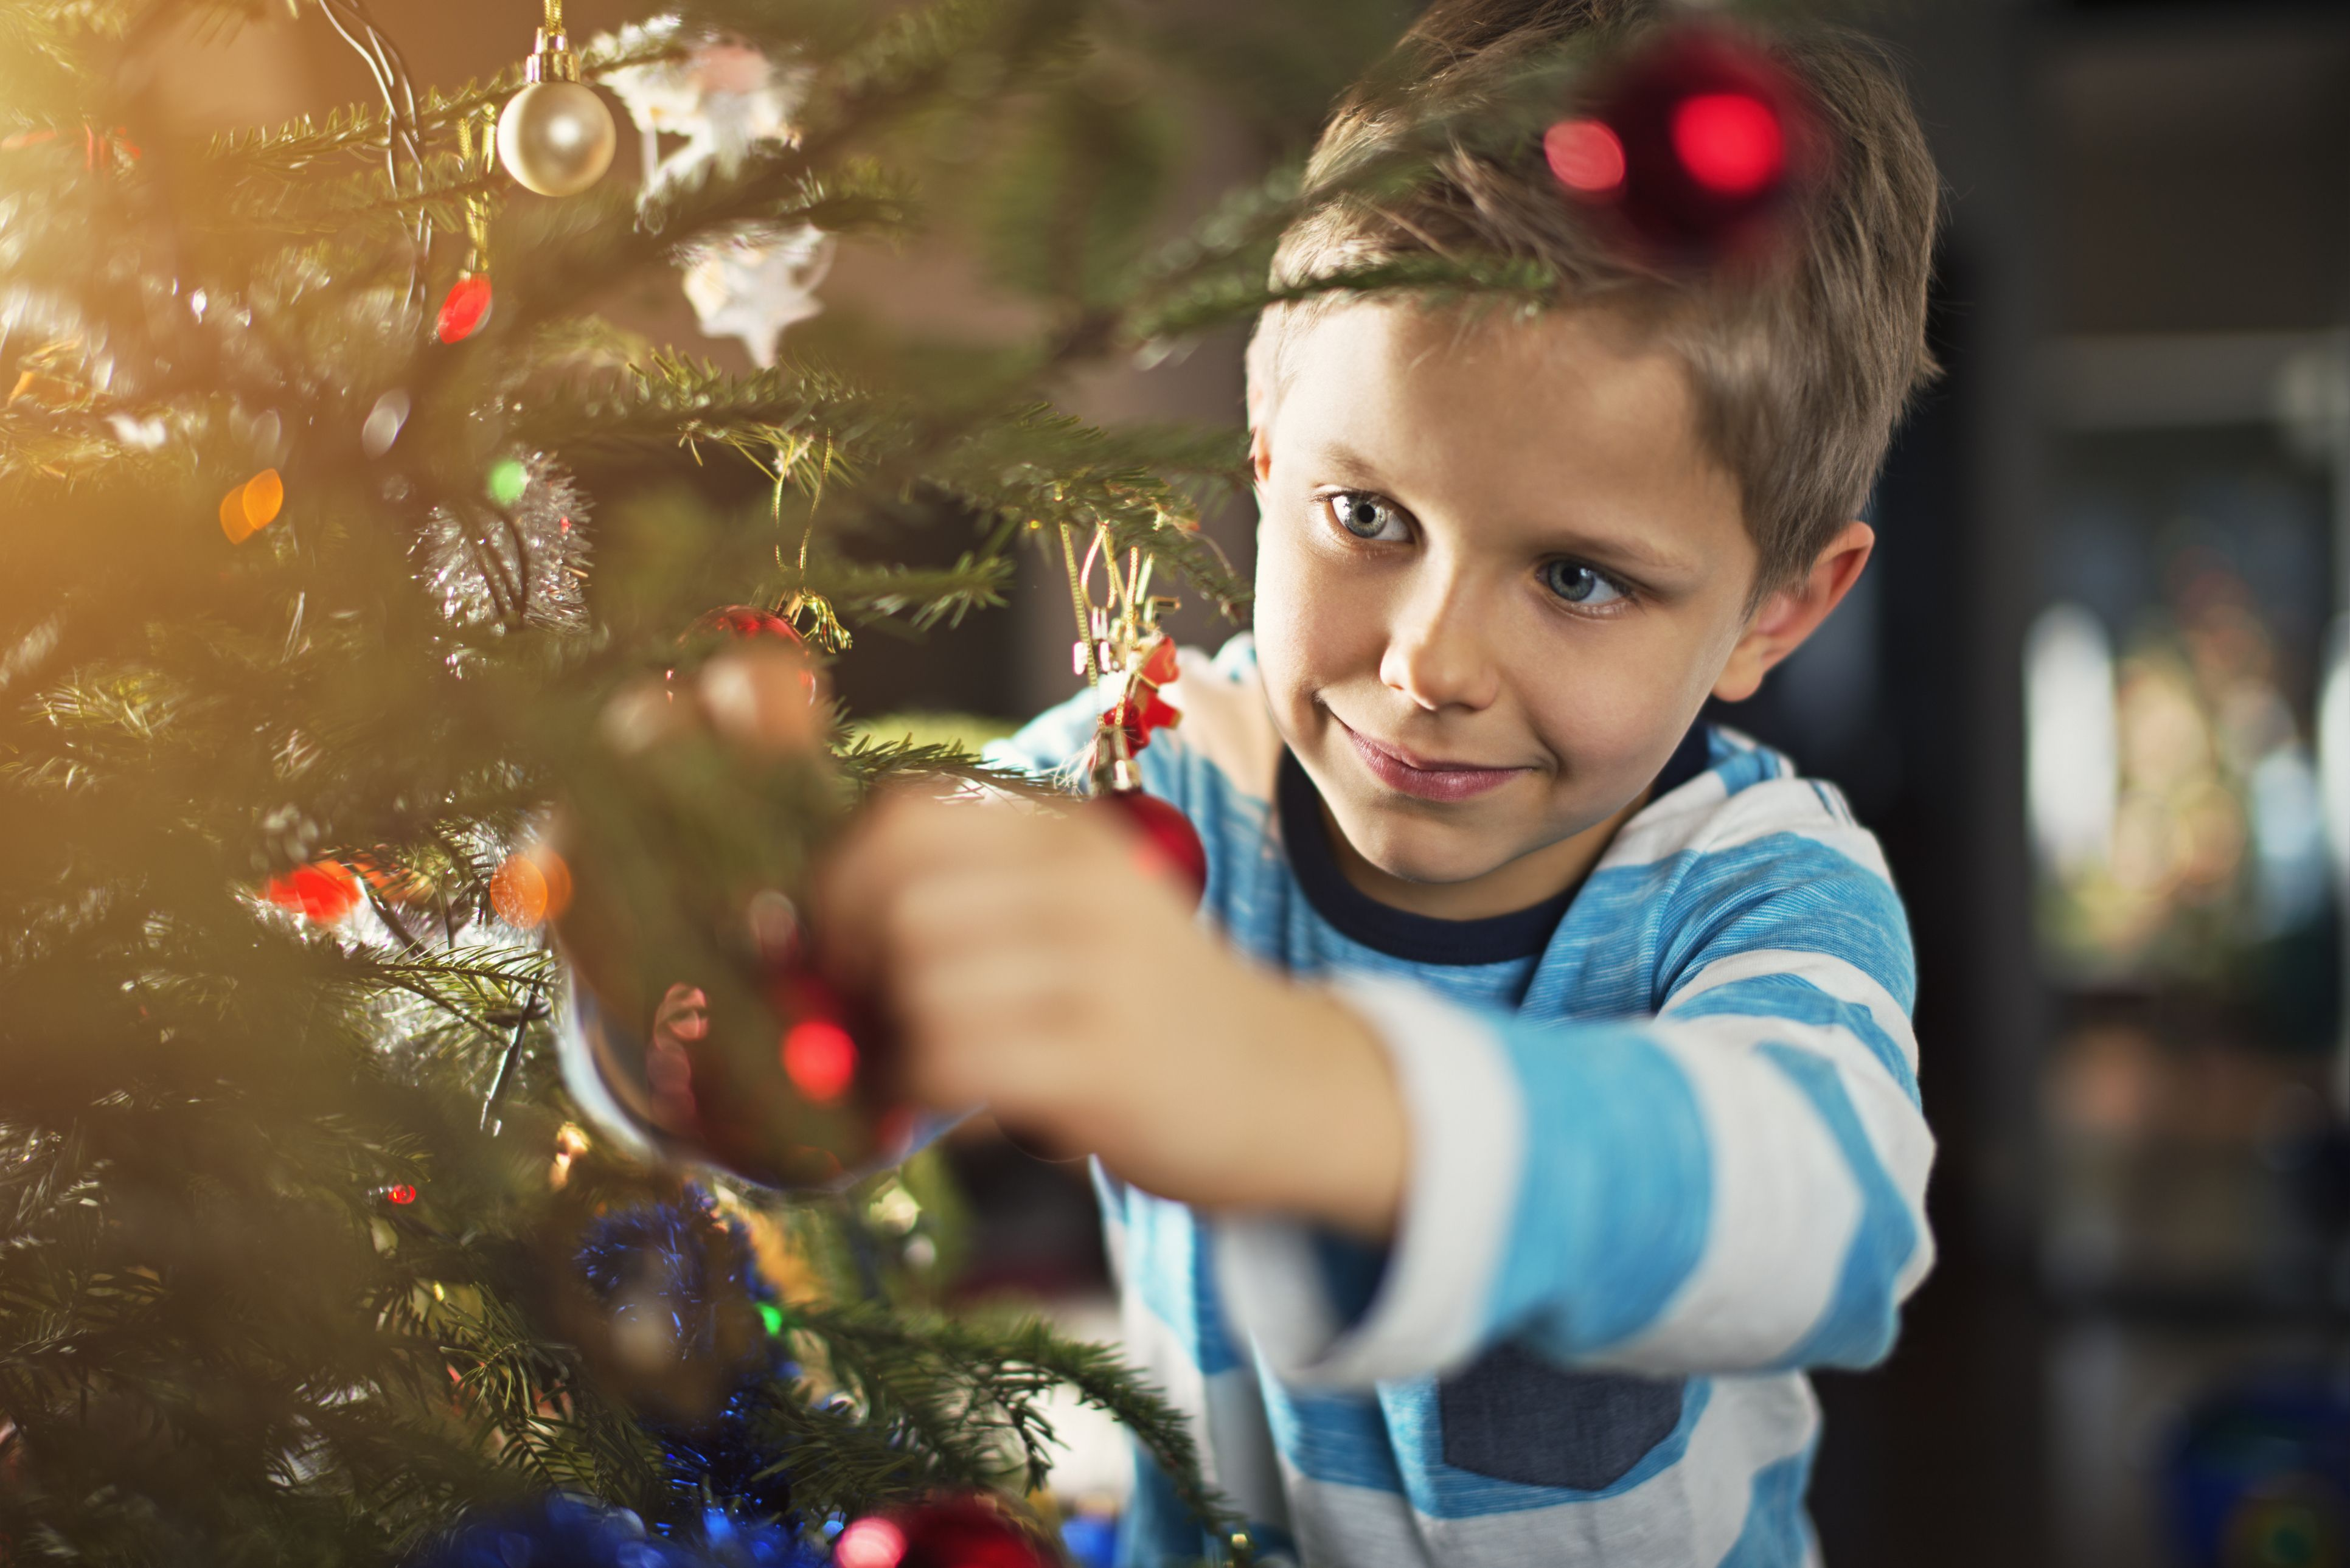 Fridays child is loving and giving gifts on christmas